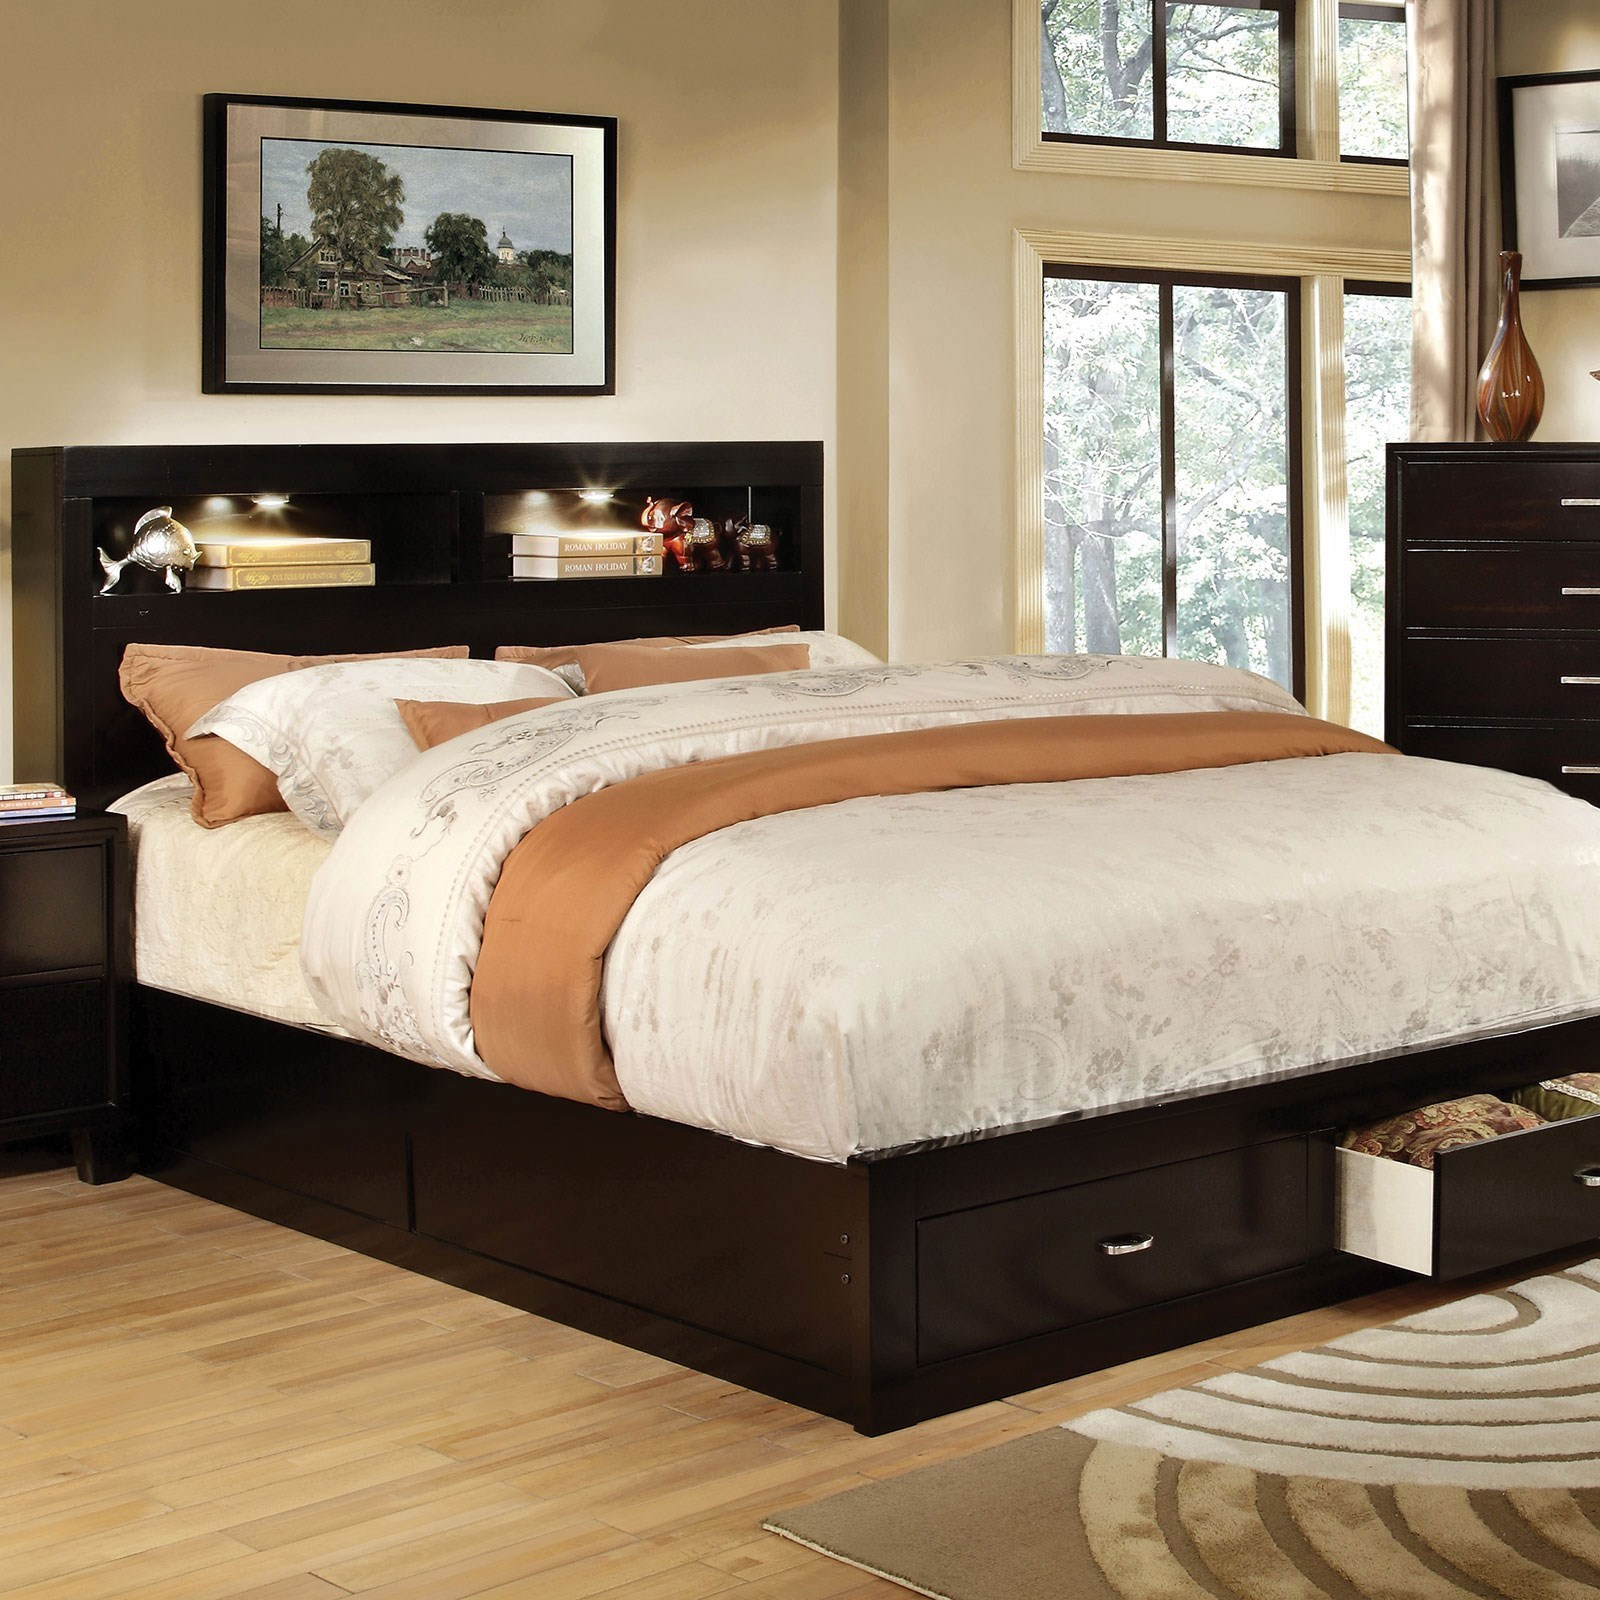 Gerico Ii Contemporary King Bookcase Bed With Footboard Storage By Furniture Of America At Furniture Superstore Nm